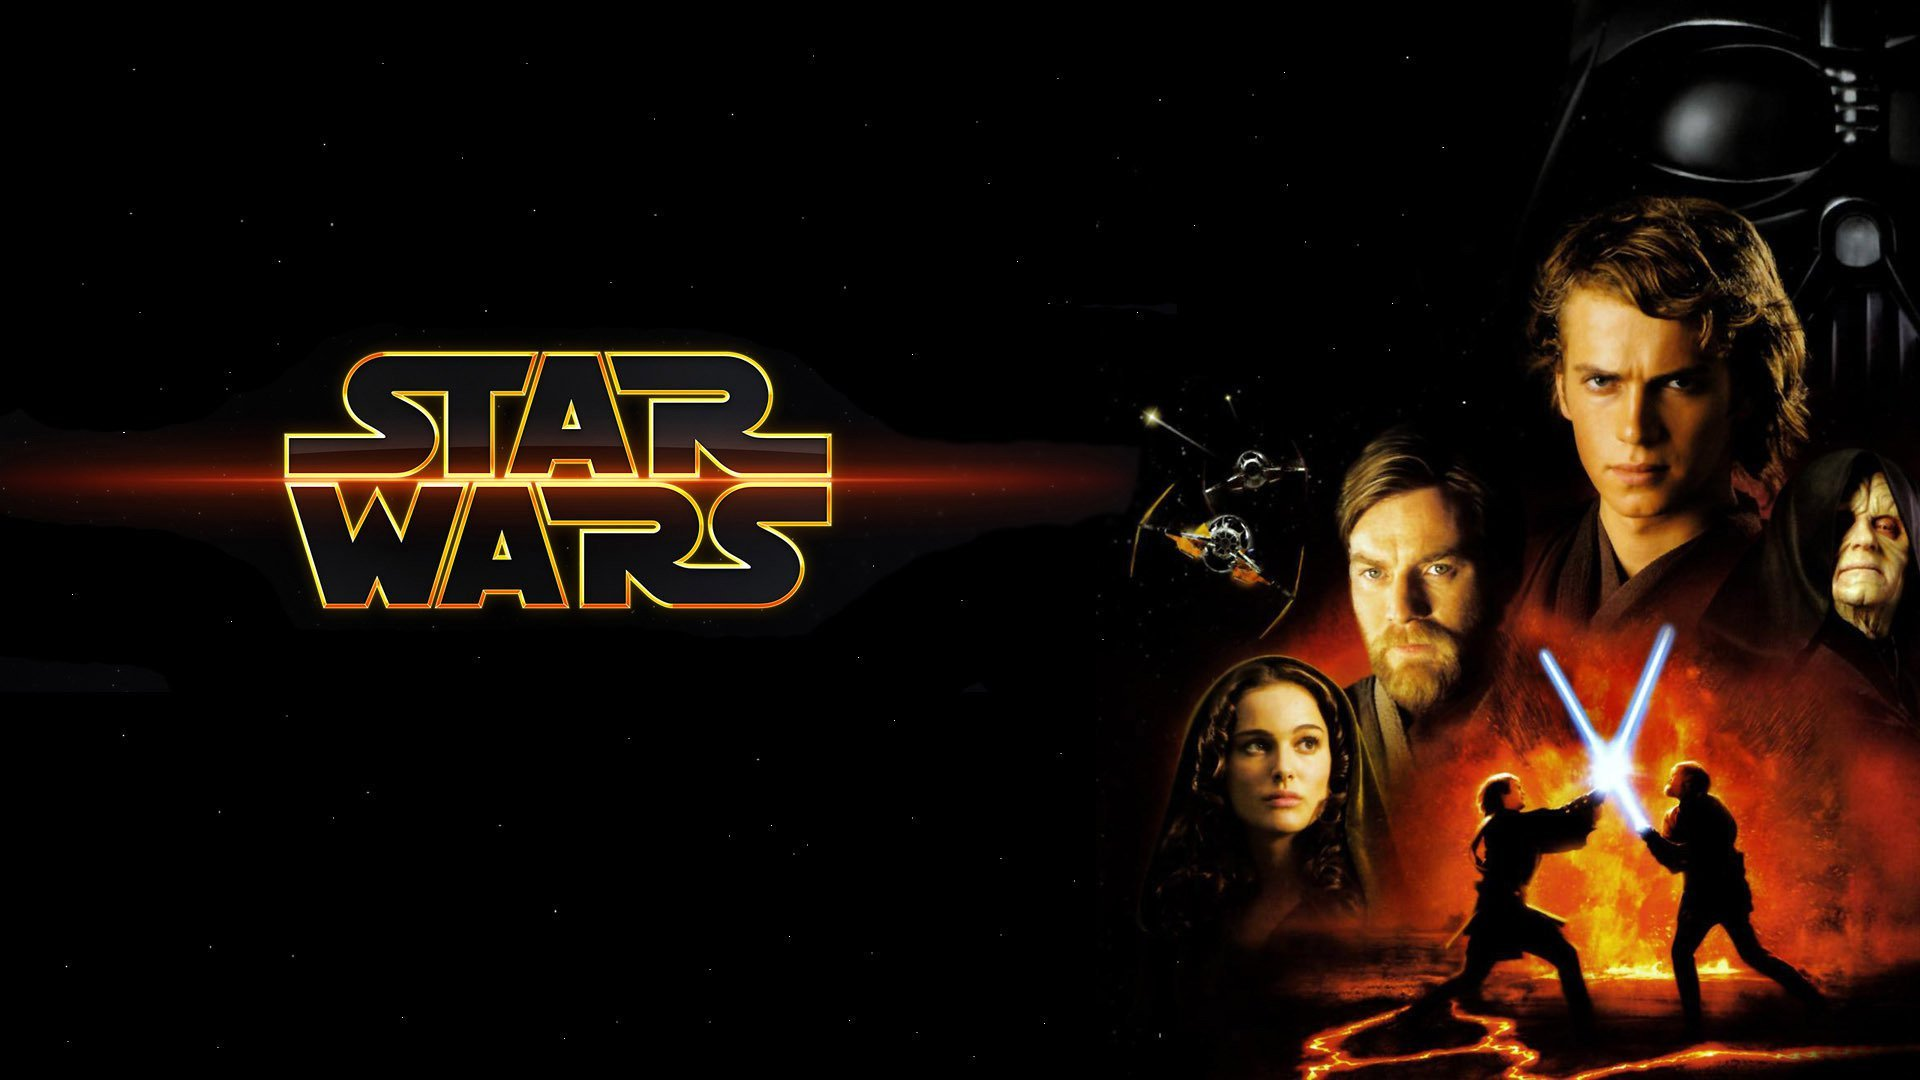 48 Revenge Of The Sith Wallpaper On Wallpapersafari